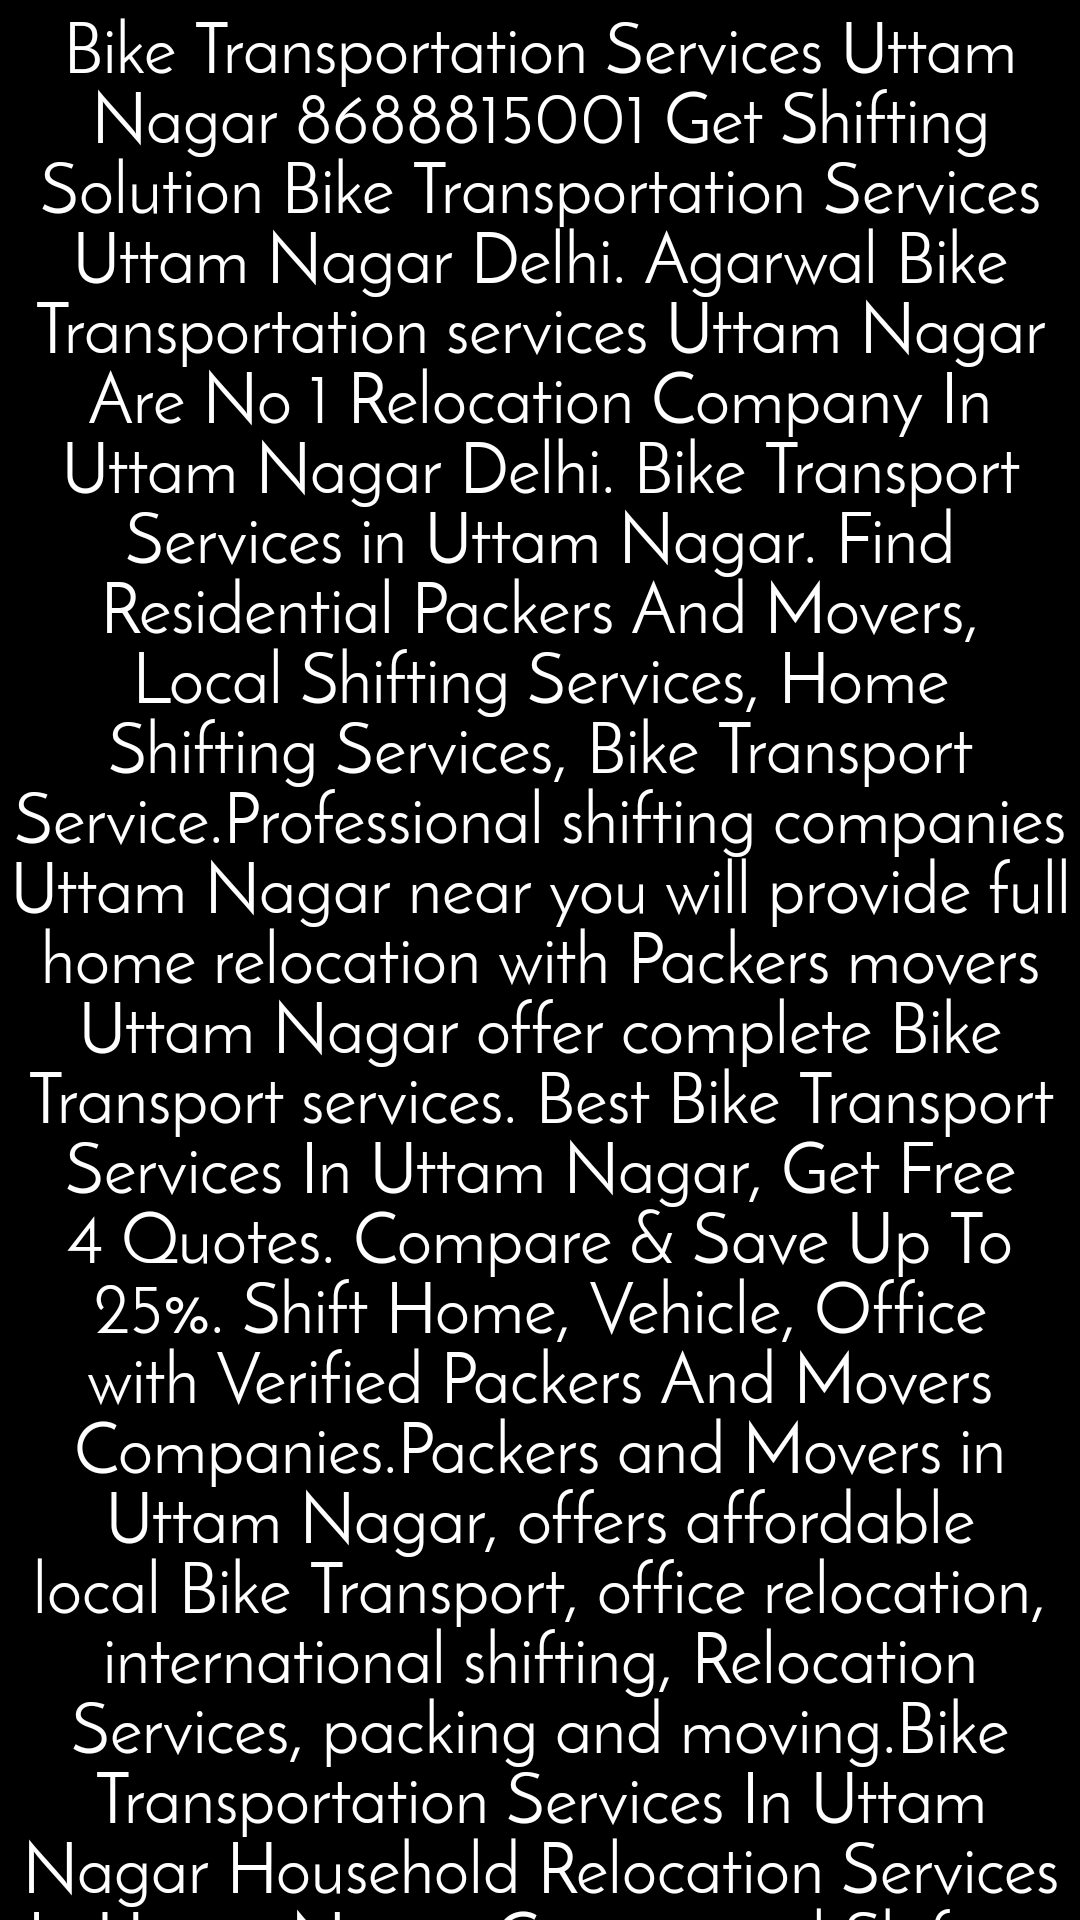 Bike Transportation Services Uttam Nagar 8688815001 Get Shifting Solution Bike Transportation Services Uttam Nagar Delhi. Agarwal Bike Transportation services Uttam Nagar Are No 1 Relocation Company In Uttam Nagar Delhi. Bike Transport Services in Uttam Nagar. Find Residential Packers And Movers, Local Shifting Services, Home Shifting Services, Bike Transport Service.Professional shifting companies Uttam Nagar near you will provide full home relocation with Packers movers Uttam Nagar offer complete Bike Transport services. Best Bike Transport Services In Uttam Nagar, Get Free 4 Quotes. Compare & Save Up To 25%. Shift Home, Vehicle, Office with Verified Packers And Movers Companies.Packers and Movers in Uttam Nagar, offers affordable local Bike Transport, office relocation, international shifting, Relocation Services, packing and moving.Bike Transportation Services In Uttam Nagar Household Relocation Services In Uttam Nagar Commercial Shifting In Uttam Nagar Office Shifting In Uttam Nagar Warehouse Storage Services Uttam Nagar Delhi.  ©Rajeev Yadav